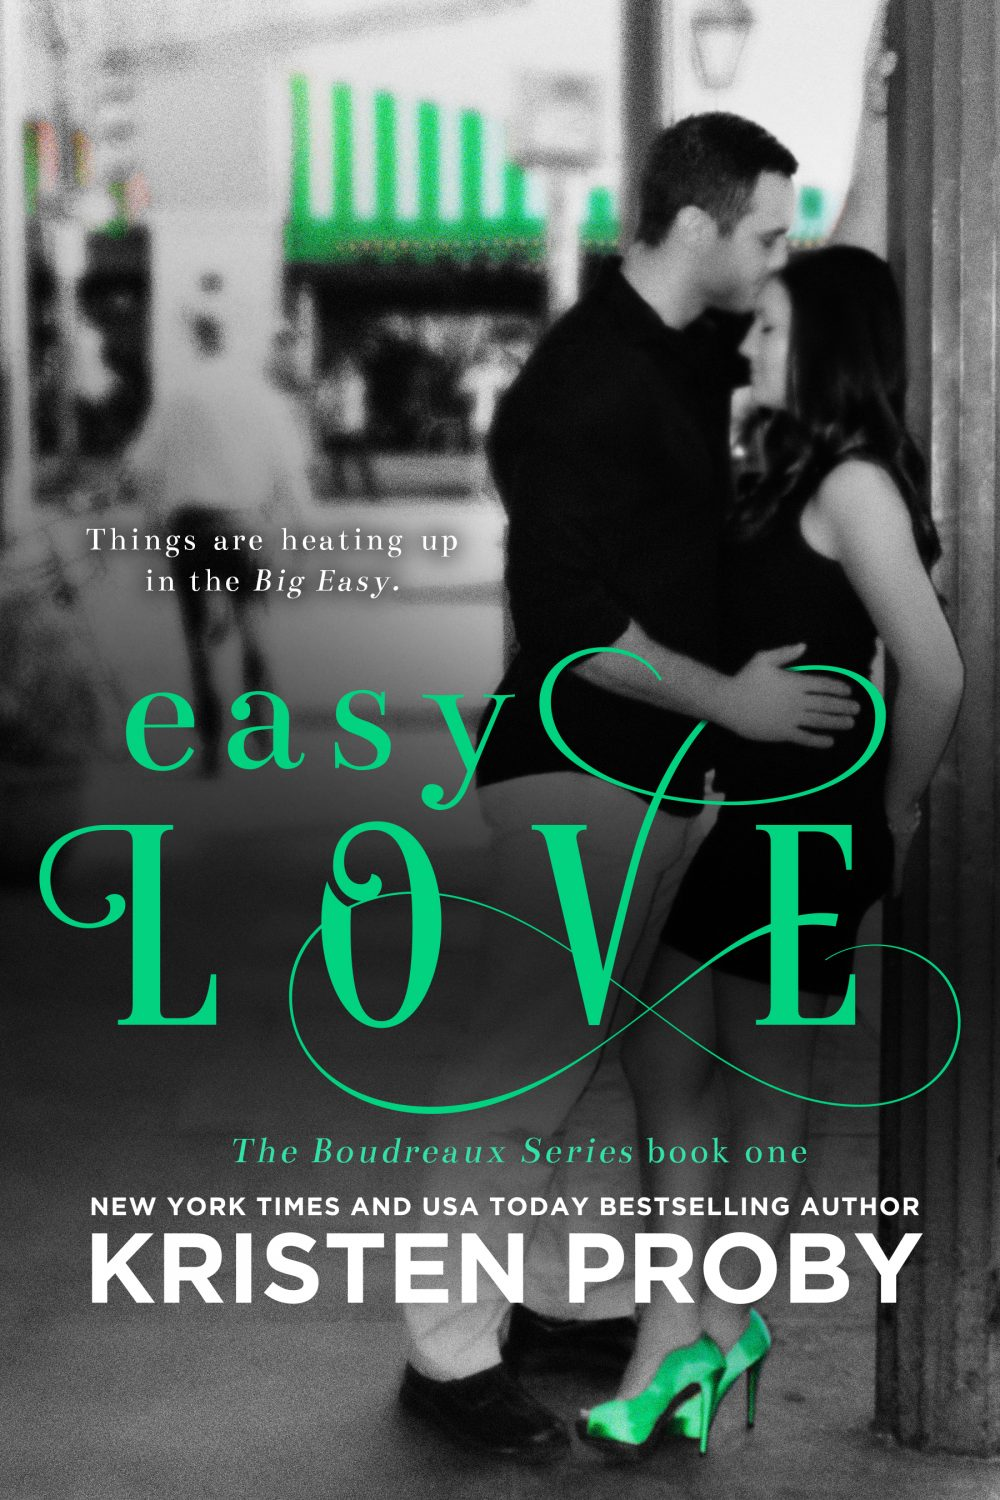 In Review: Easy Love (Boudreaux #1) by Kristen Proby